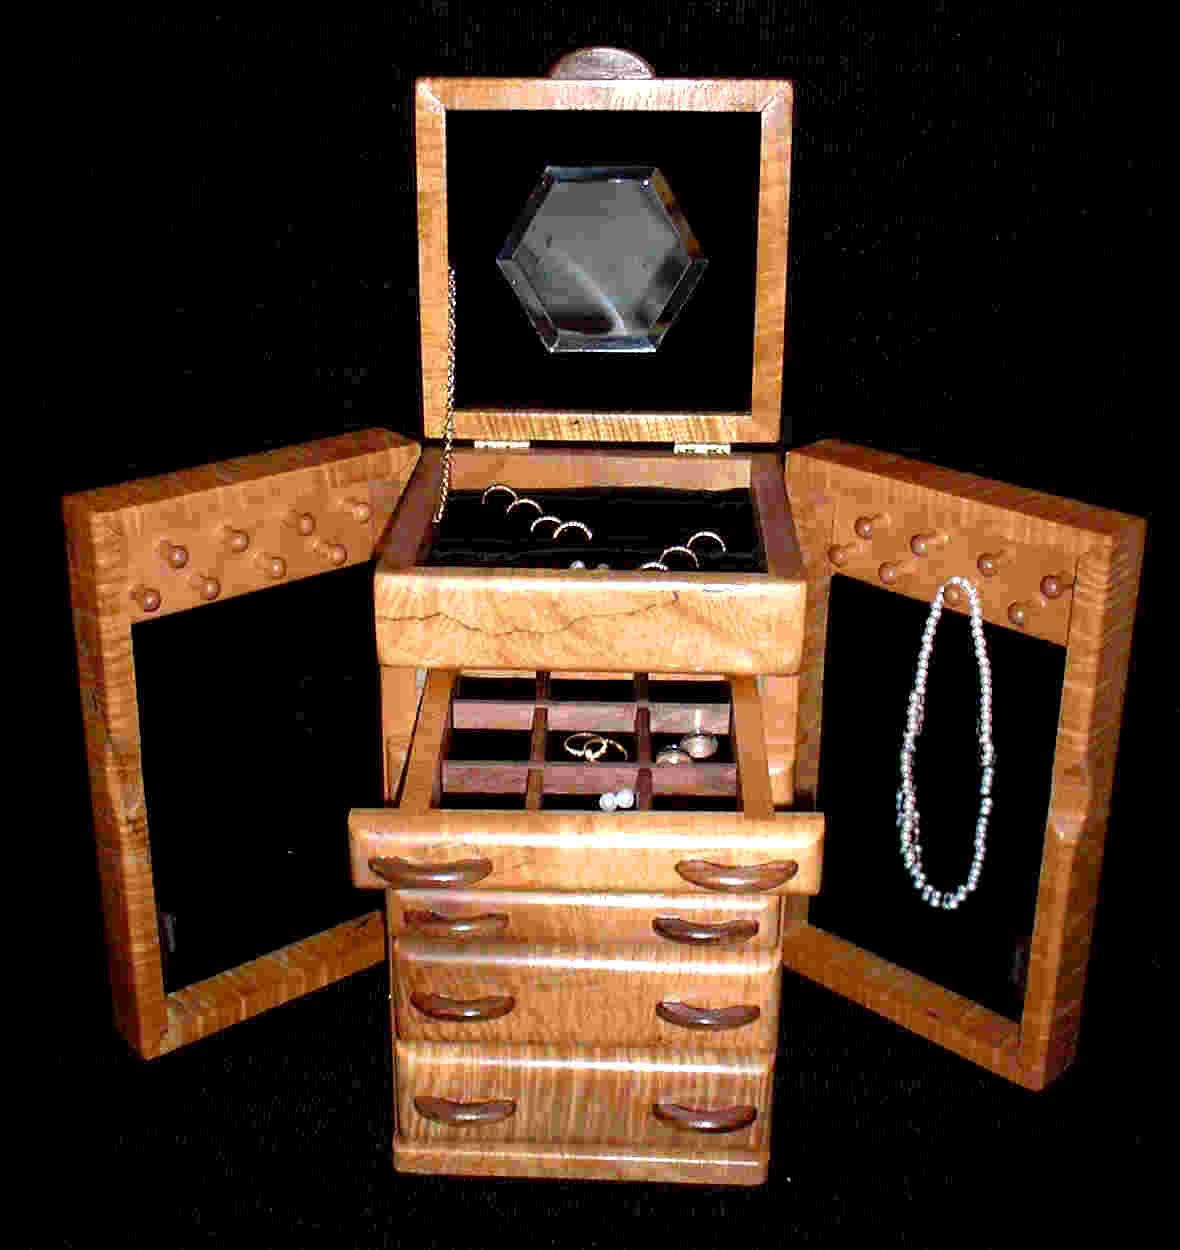 Wooden Jewelry Boxes | Wooden Hand Mirrors Jewelry Boxes Jewelry Chests with Old World  sc 1 st  Pinterest & Wooden Jewelry Boxes | Wooden Hand Mirrors Jewelry Boxes Jewelry ... Aboutintivar.Com